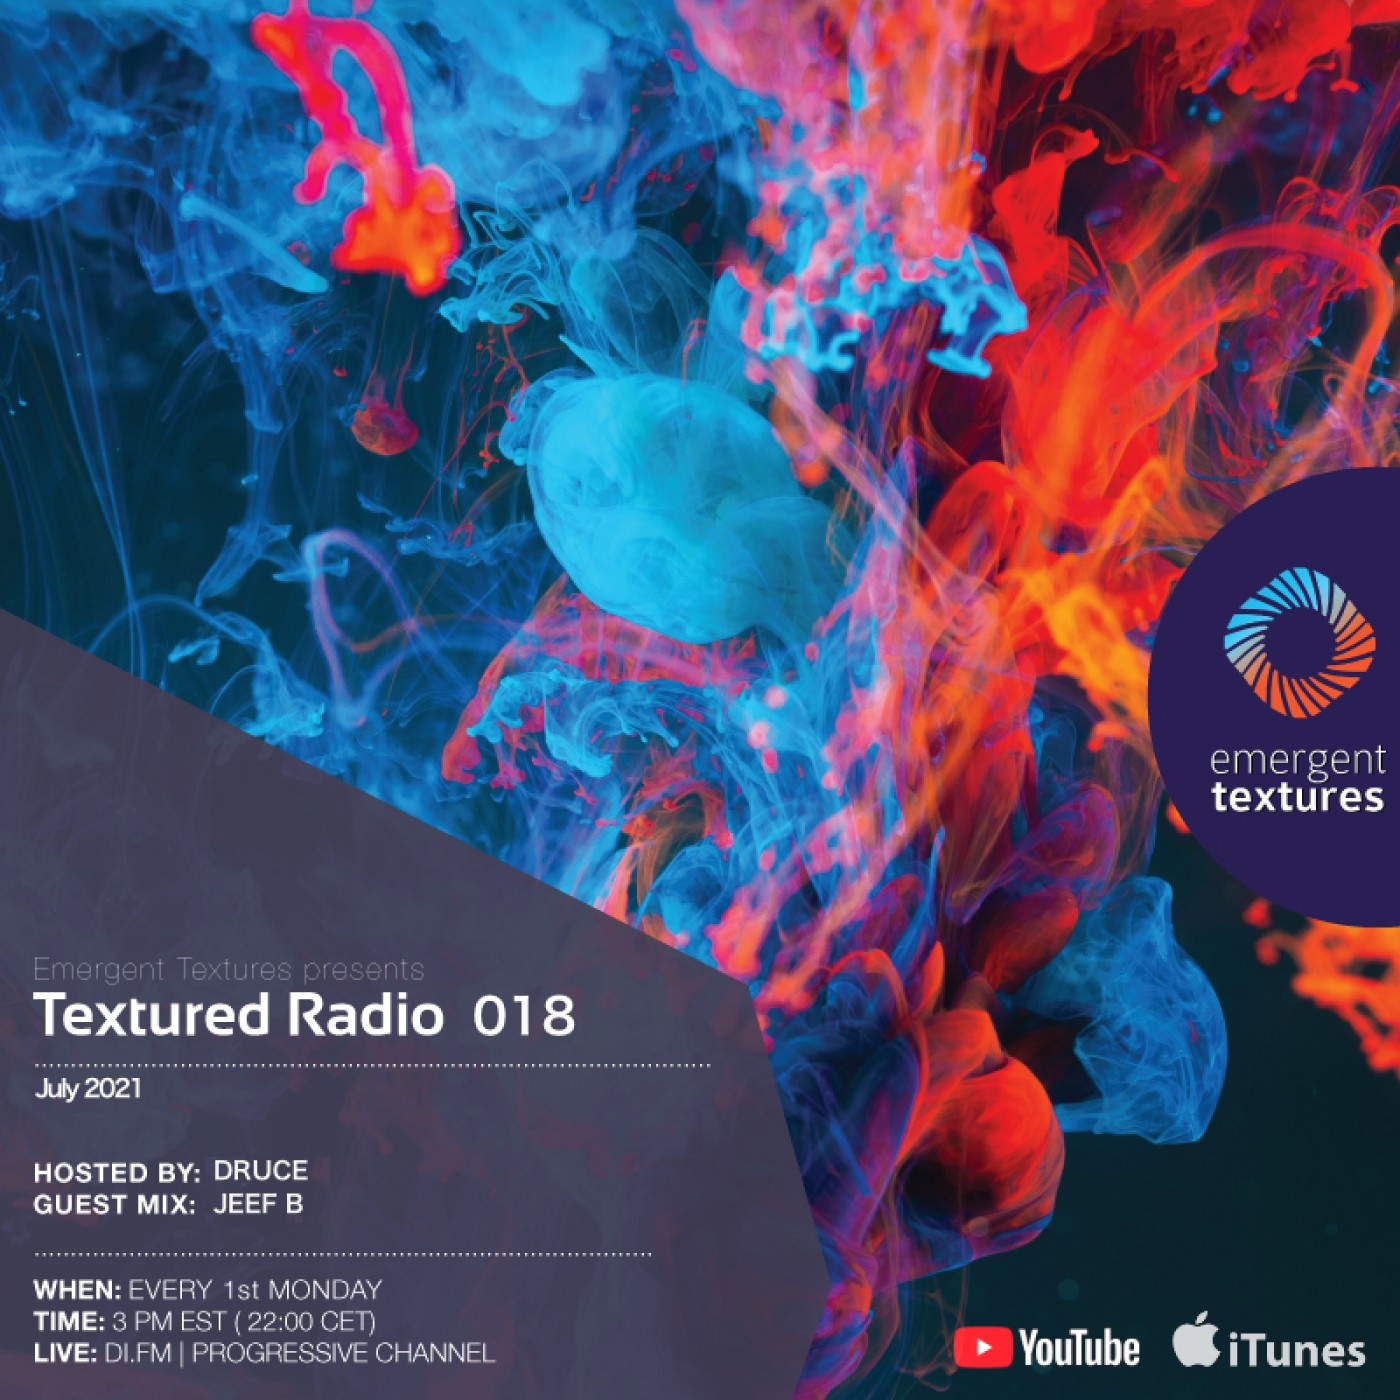 Textured Radio 018 hosted by DRUCE